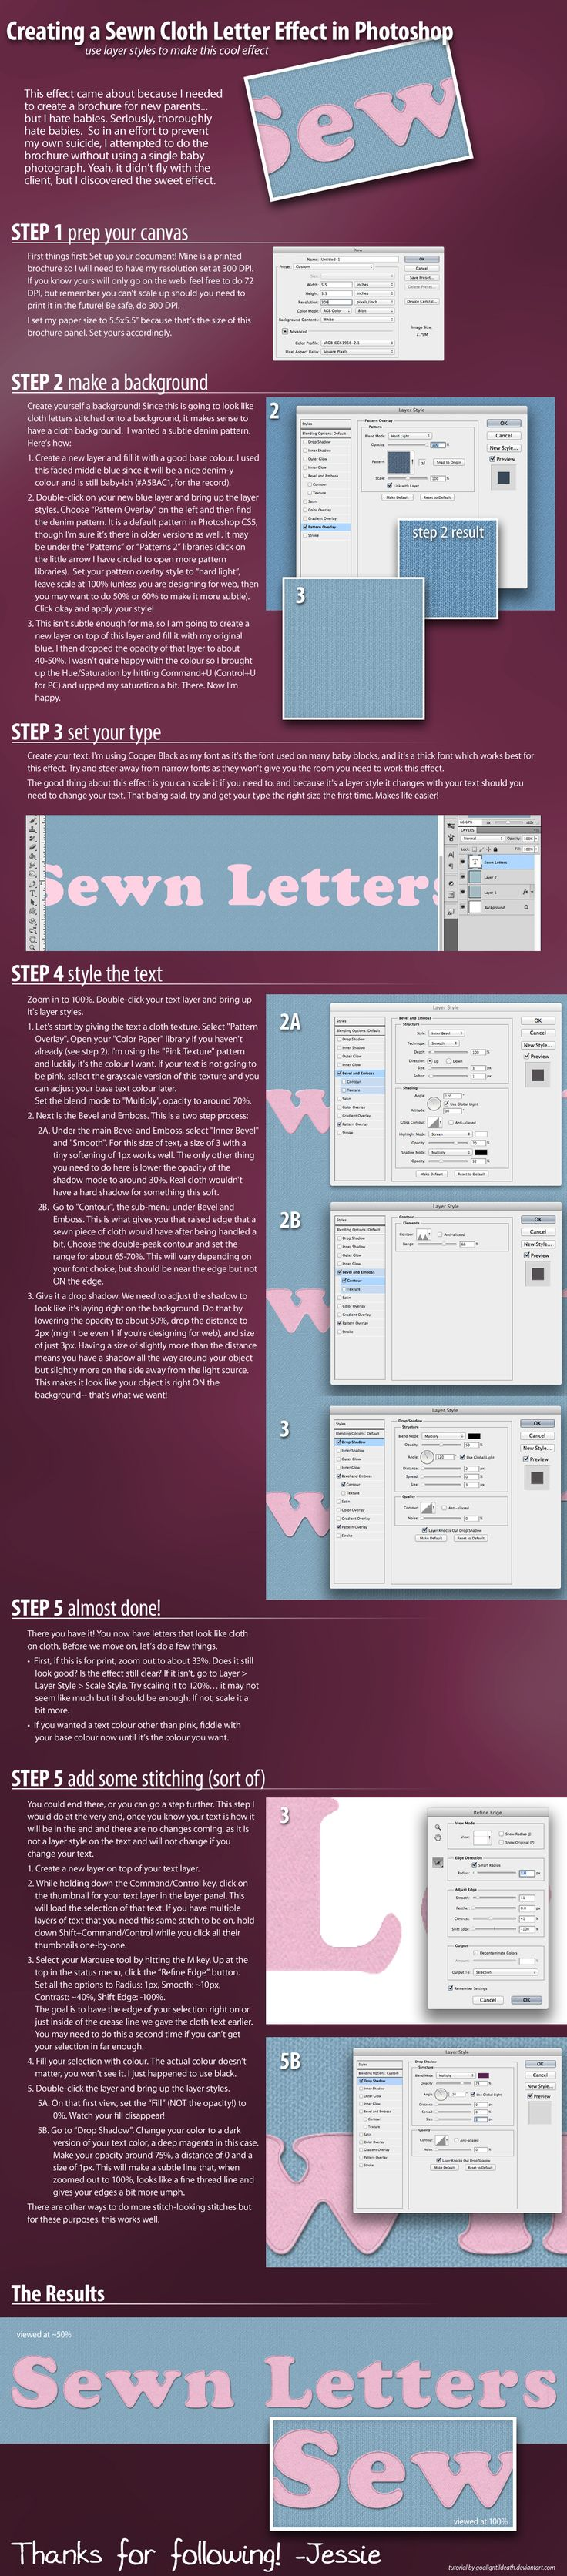 Again >> Creating a Sewn Cloth Letter Effect in Photoshop by GoaliGrlTilDeath.deviantart.com | drawing ...